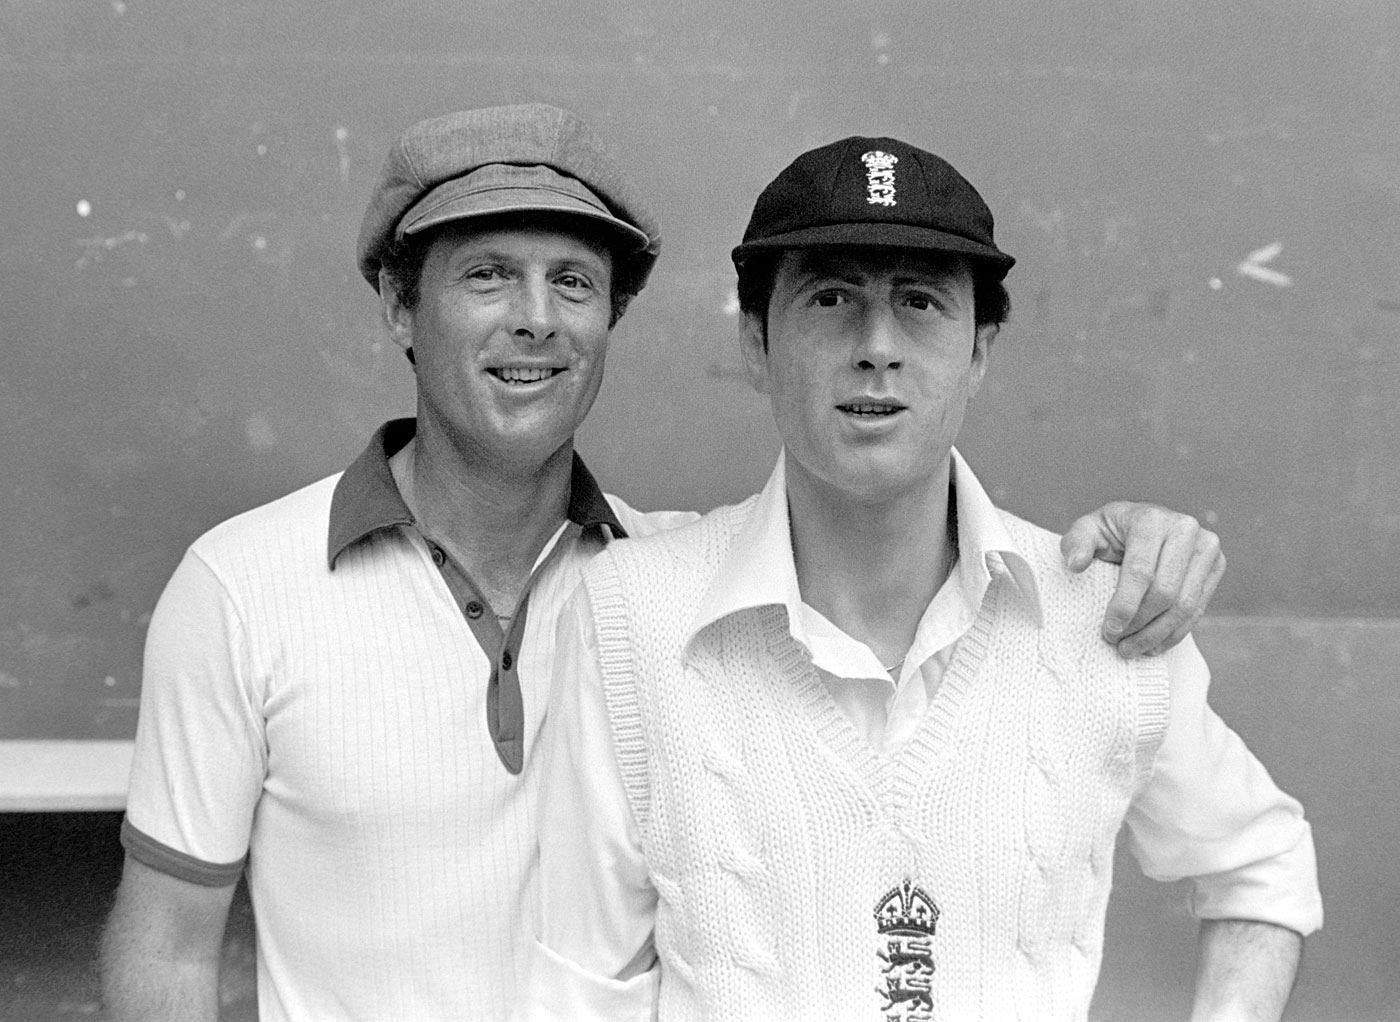 Geoff Boycott poses next to his wax statue